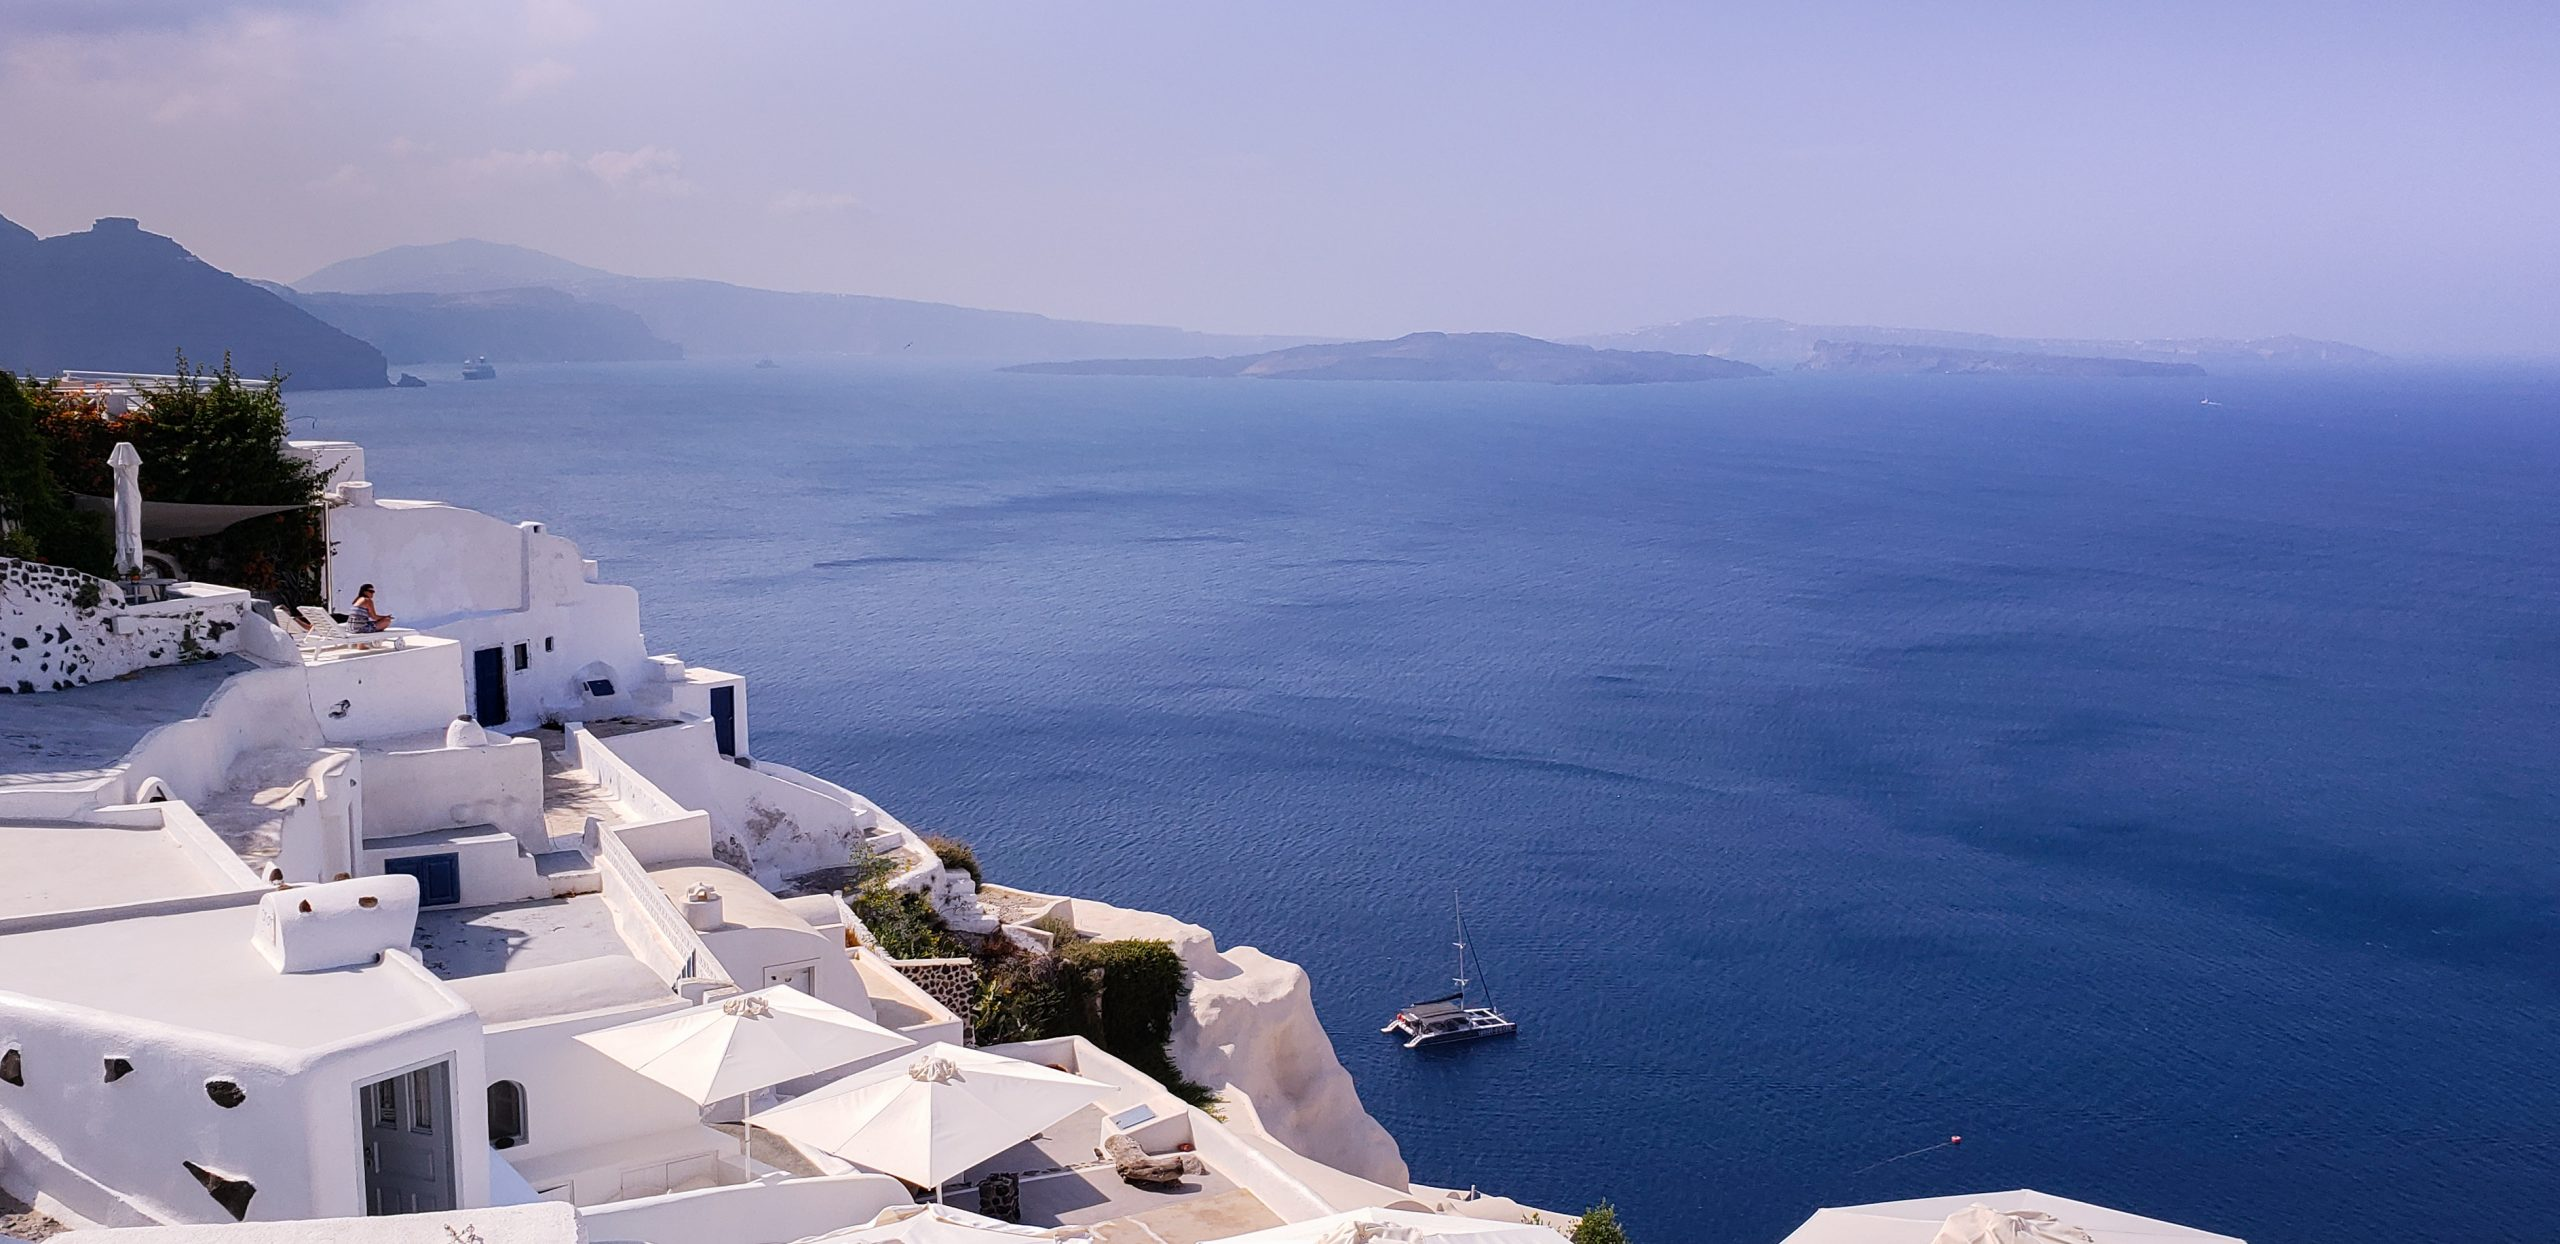 Santorini Blue and White Houses Caldera View Summer 2018